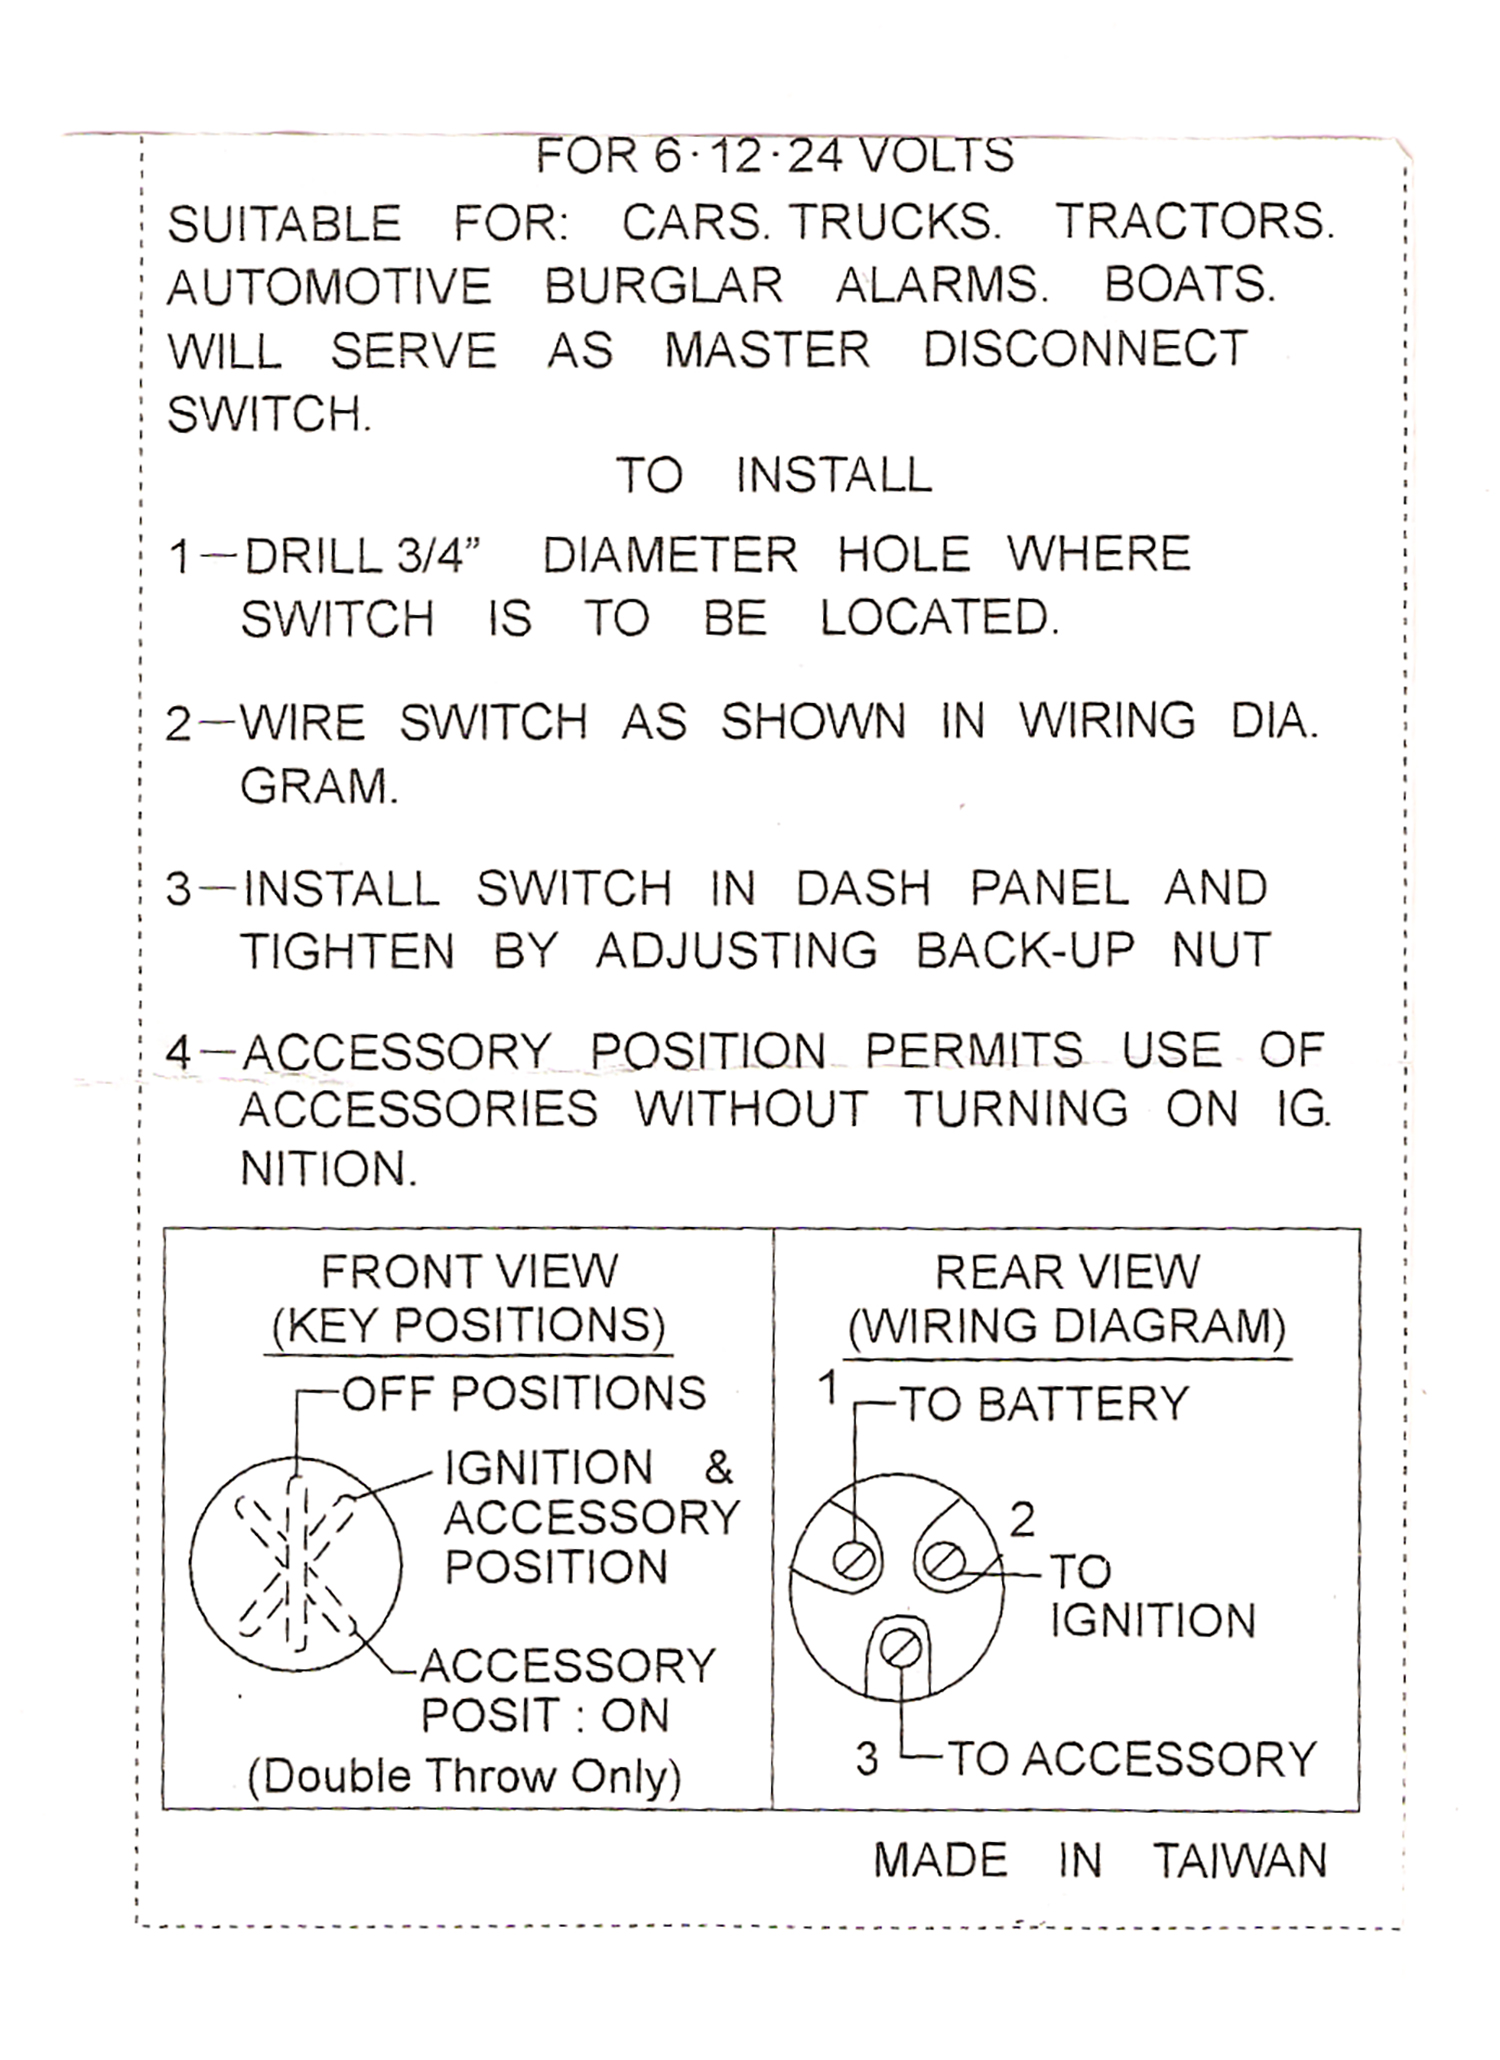 0D93753 3 Position Ignition Switch Wiring Diagram | Wiring ... on ignition system wiring diagram, universal ignition switch installation, 12 volt solenoid wiring diagram, gm tachometer wiring diagram, club car ignition switch diagram, ford steering column wiring diagram, 1-wire alternator wiring diagram, saab 900 ignition wiring diagram, distributor wiring diagram, universal motorcycle ignition switch, starter wiring diagram, cdi ignition wiring diagram, garden tractor ignition switch diagram, chopper wiring diagram, 1990 f250 truck wiring diagram, ignition coil wiring diagram, simple auto wiring diagram, evinrude 28 spl ignition wiring diagram, murray ignition switch diagram,